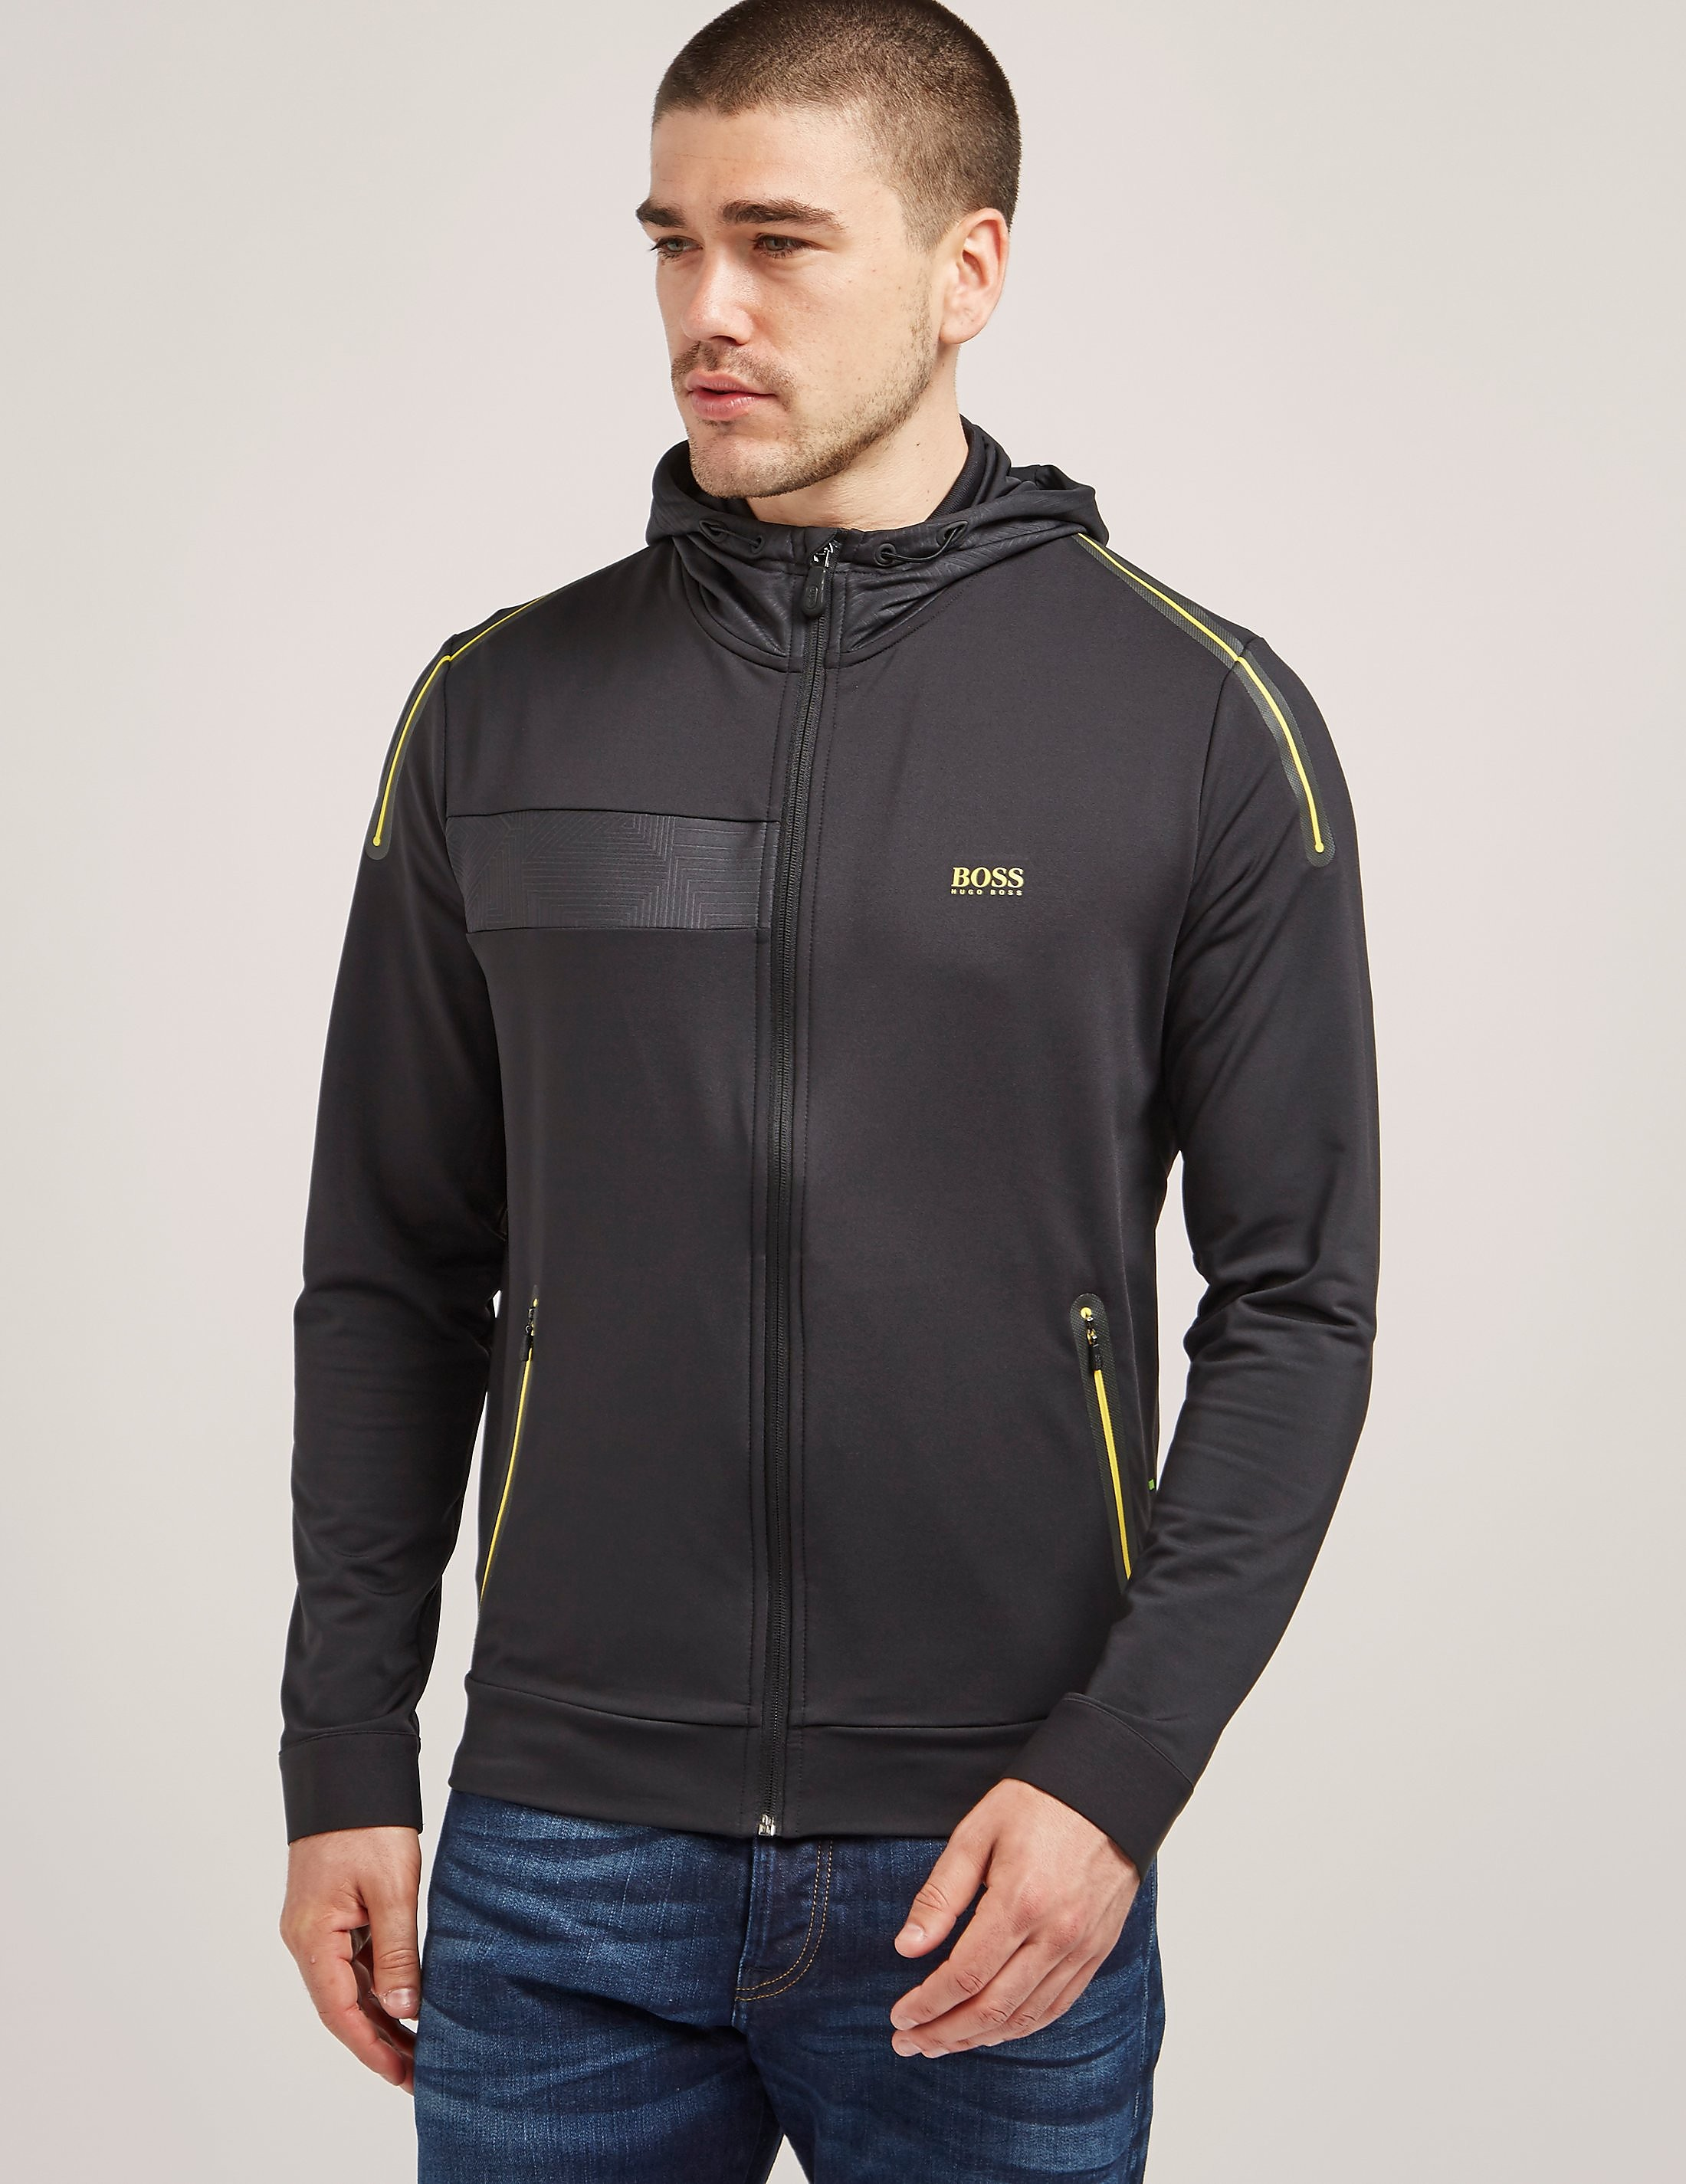 BOSS Green Slim Fit Full Zip Hoody